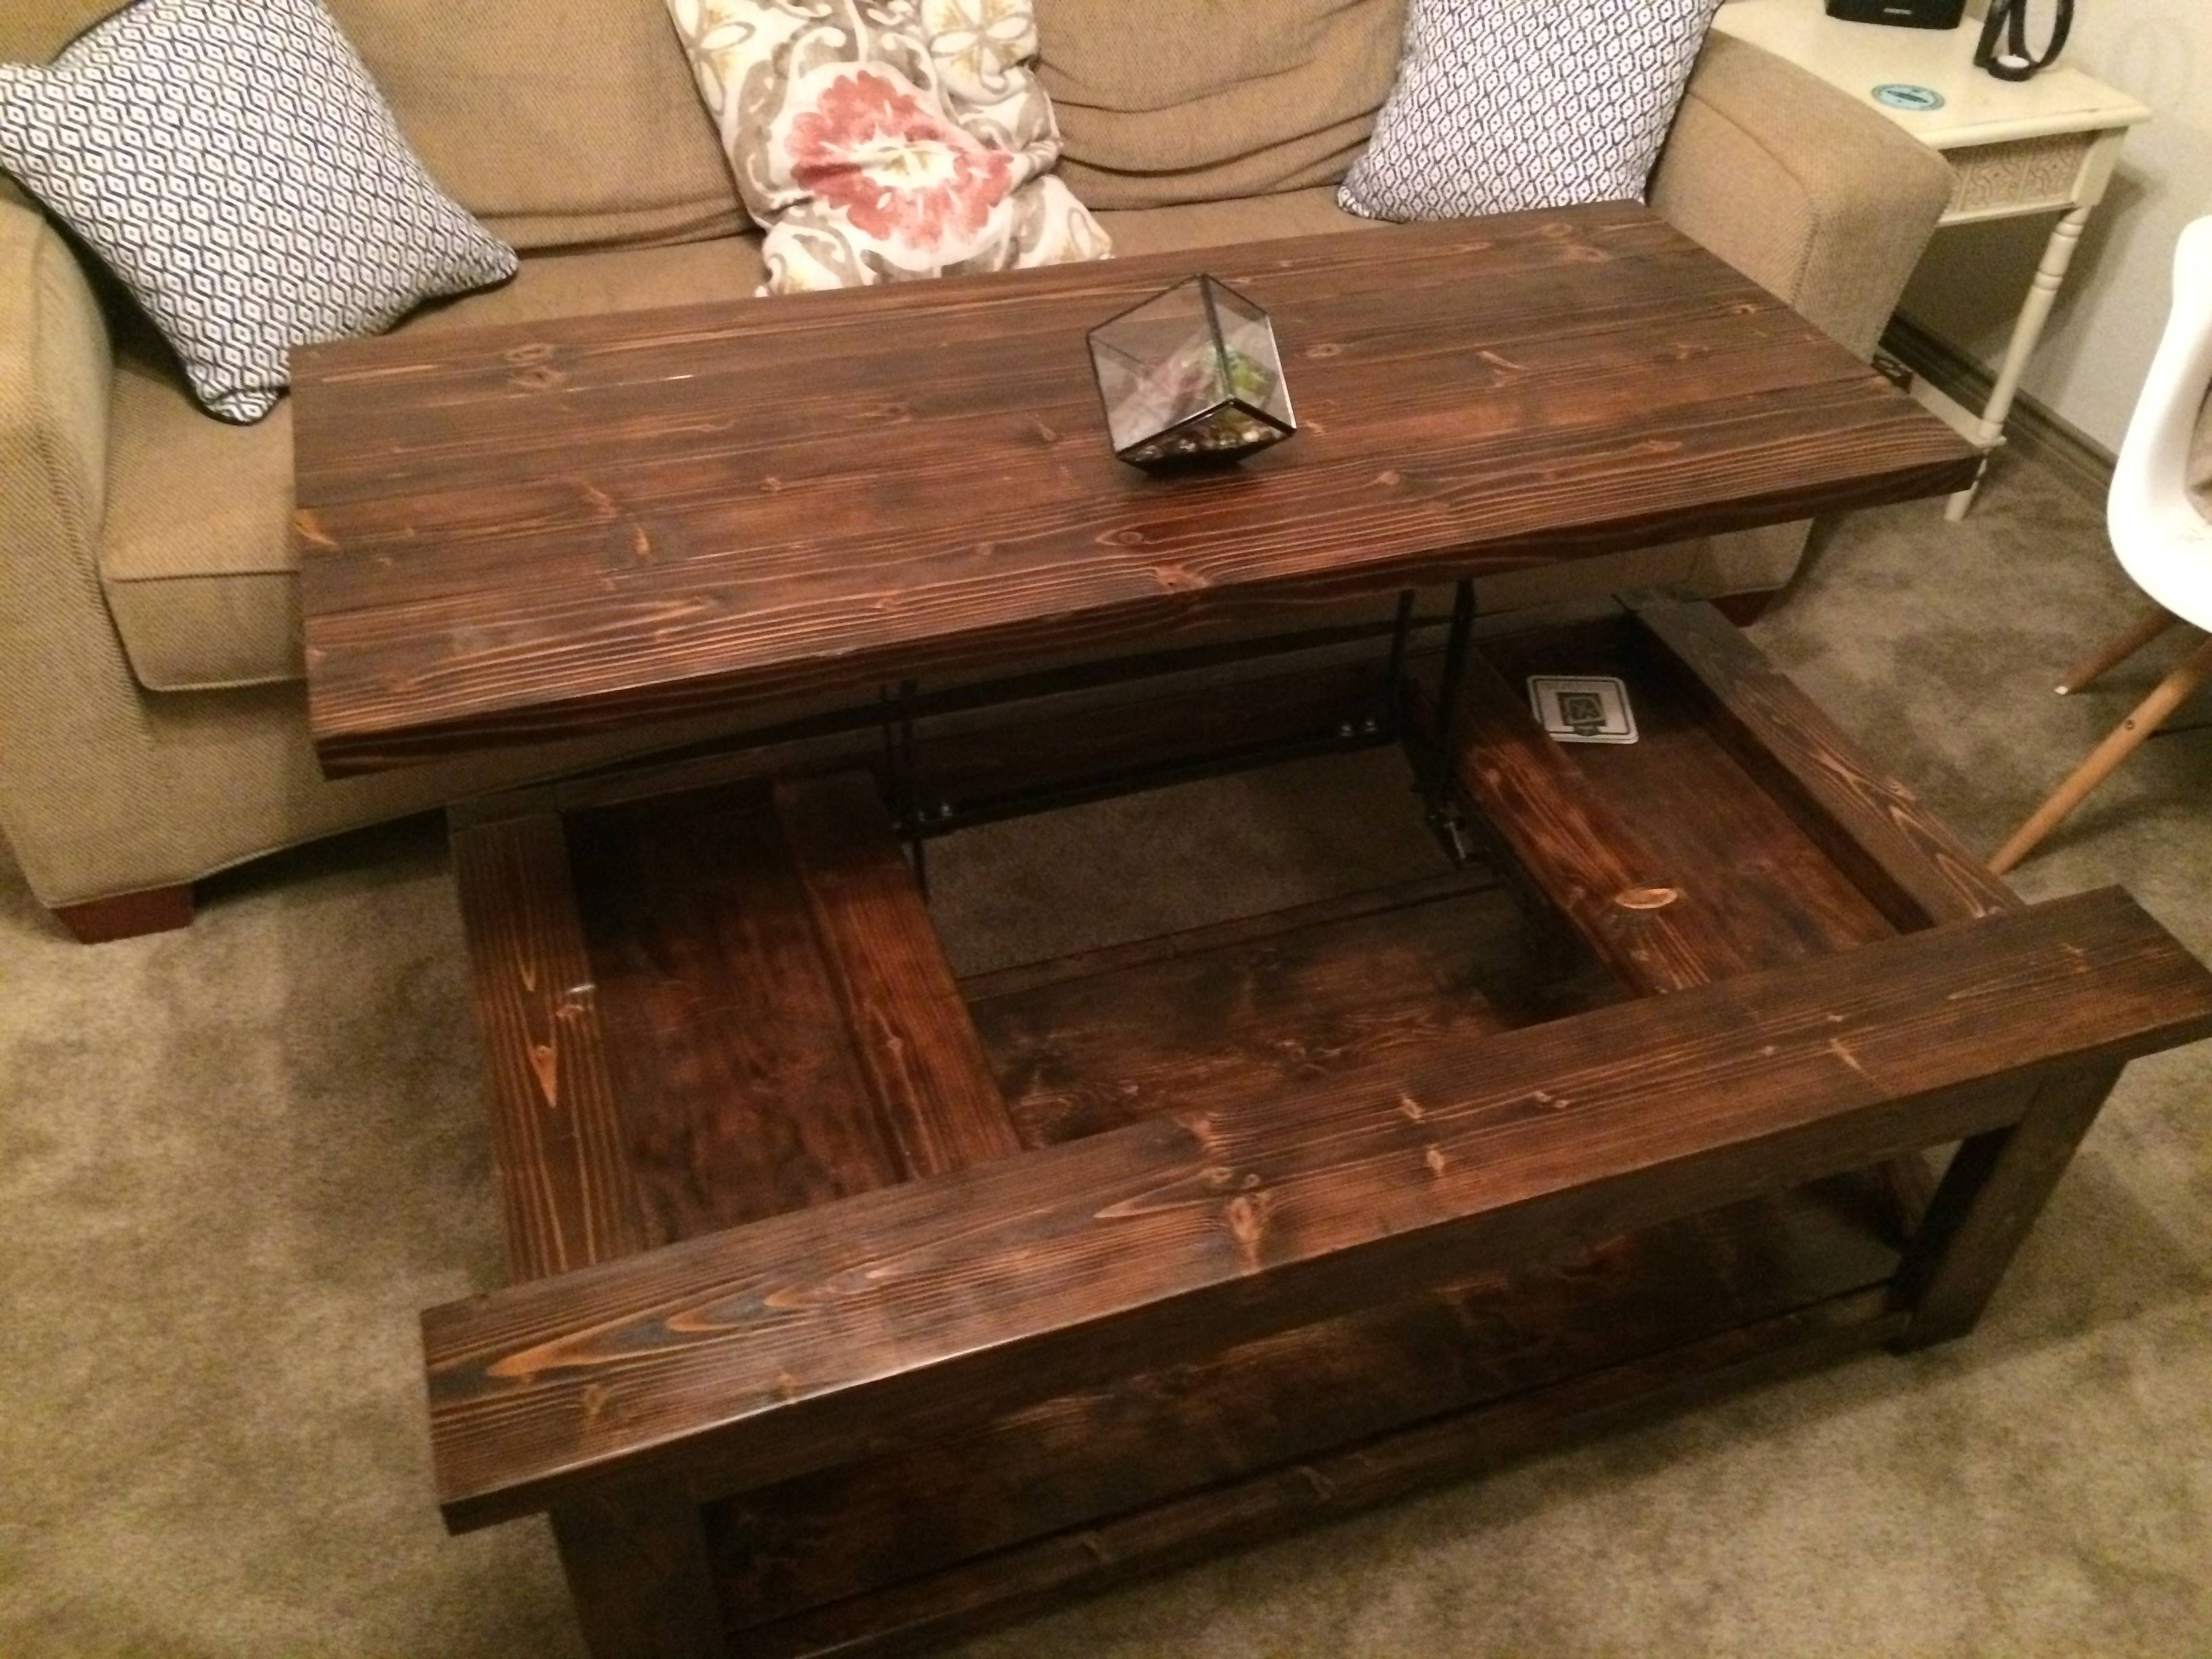 Ana White | Diy Lift Top Coffee Table - Rustic X Style - Diy Projects inside Top Lifting Coffee Tables (Image 3 of 30)